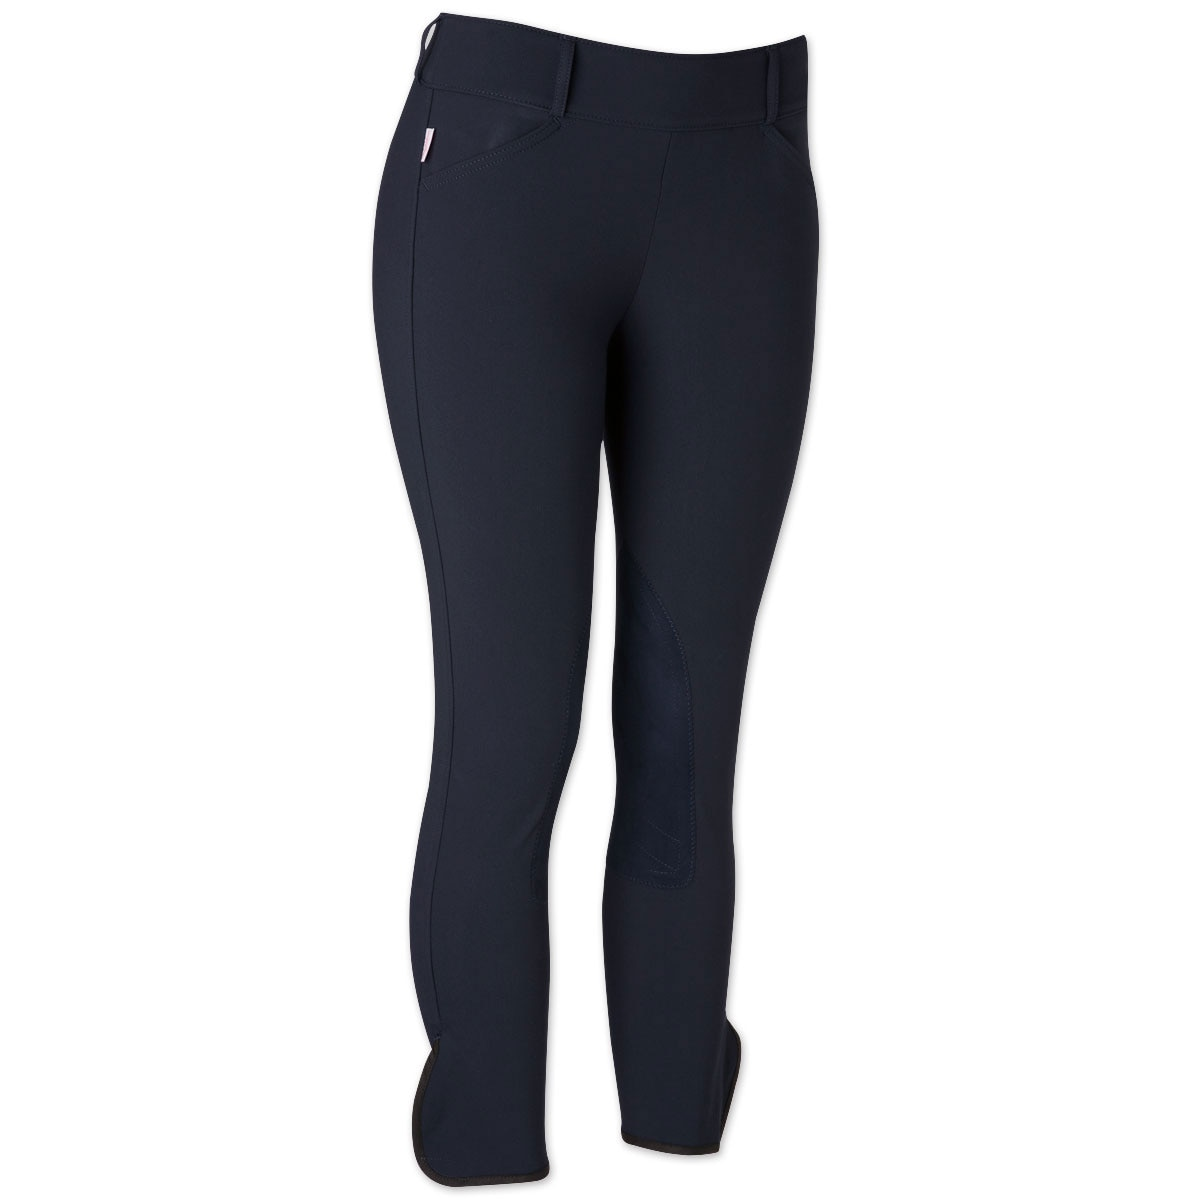 The Tailored Sportsman Trophy Hunter - Low Rise Side Zip